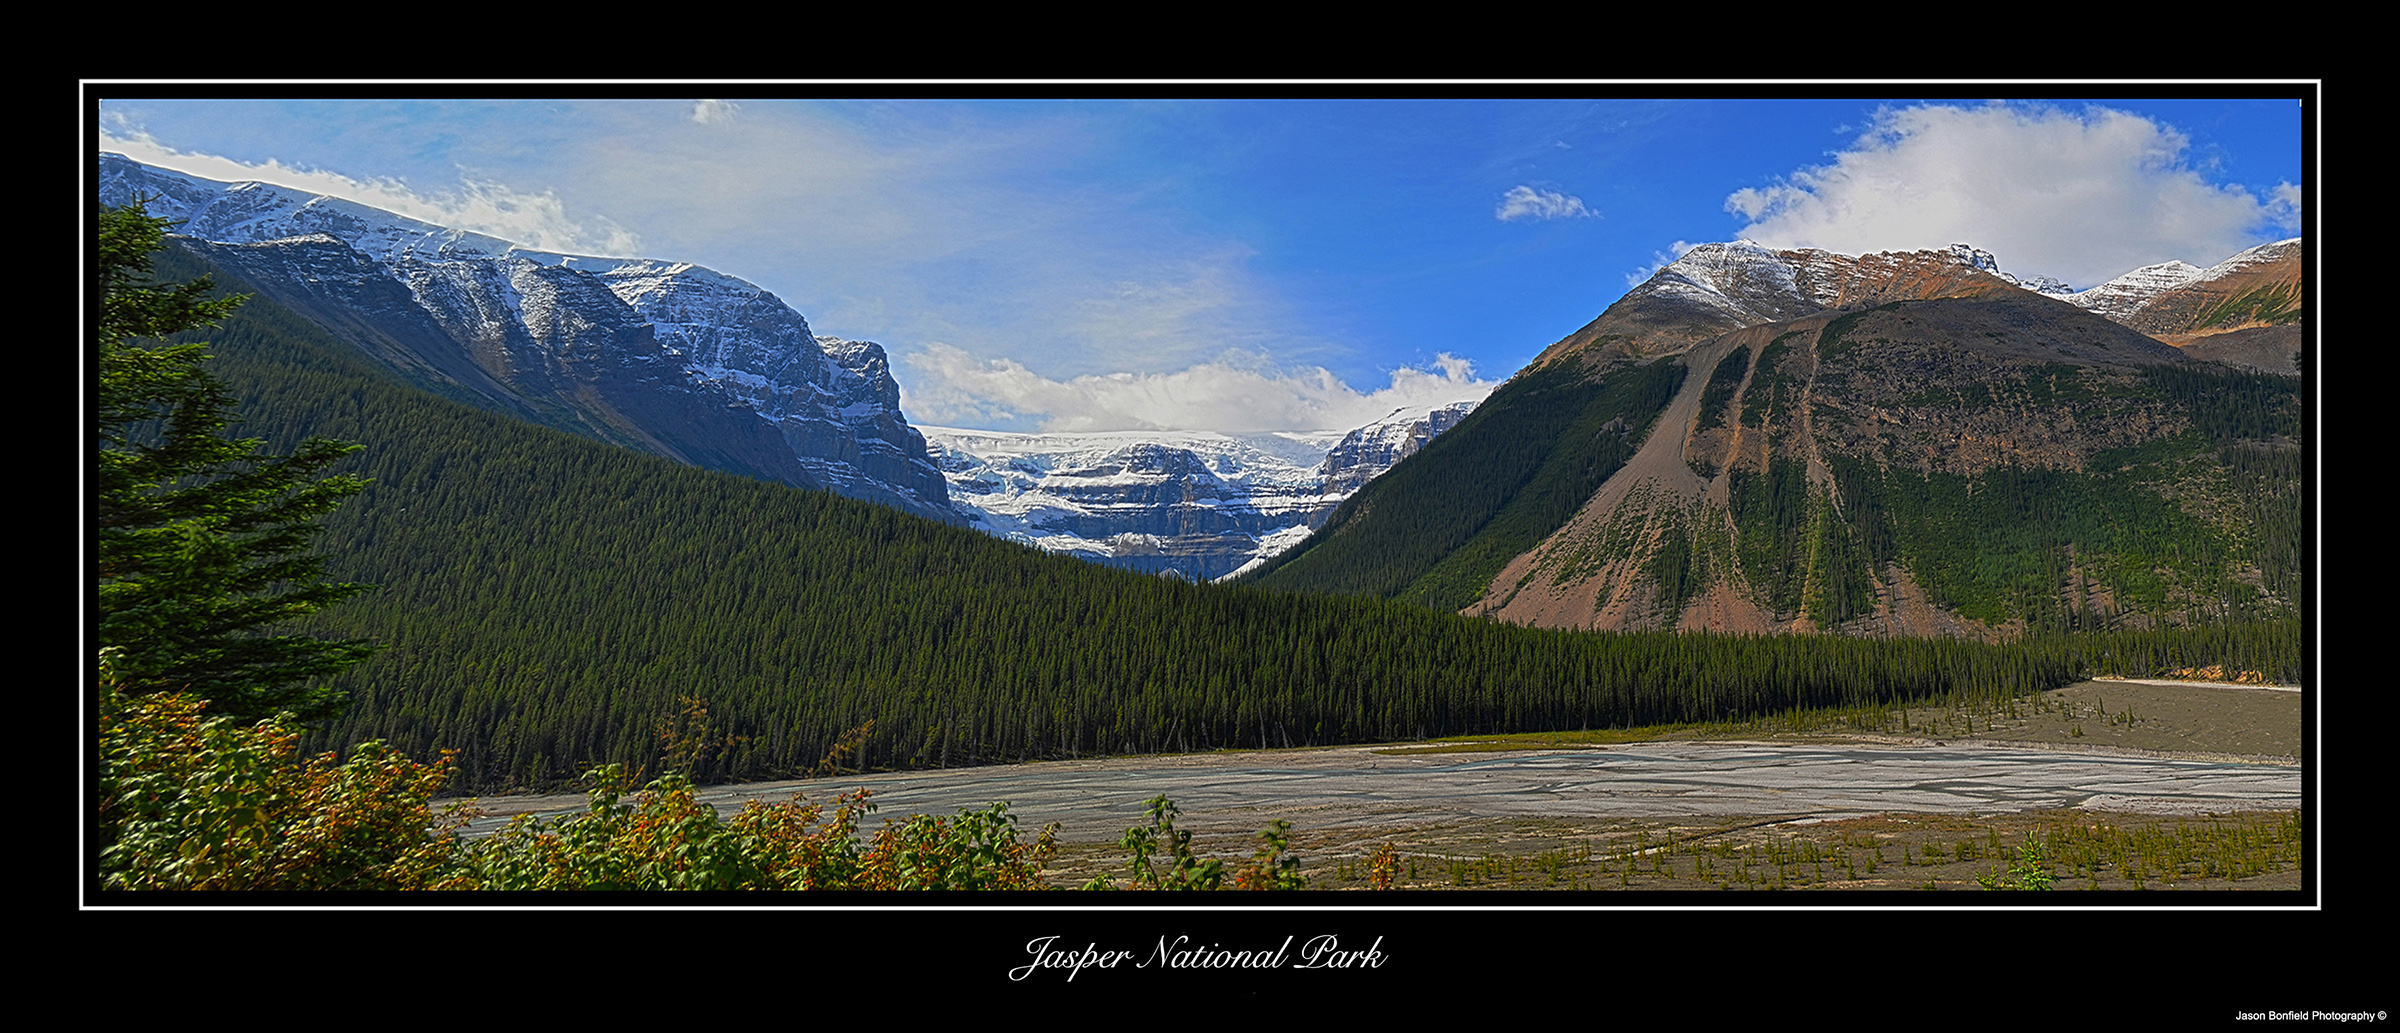 Panoramic landscape picture of mountains and glaciers in Jasper National Park in Alberta, Canada.